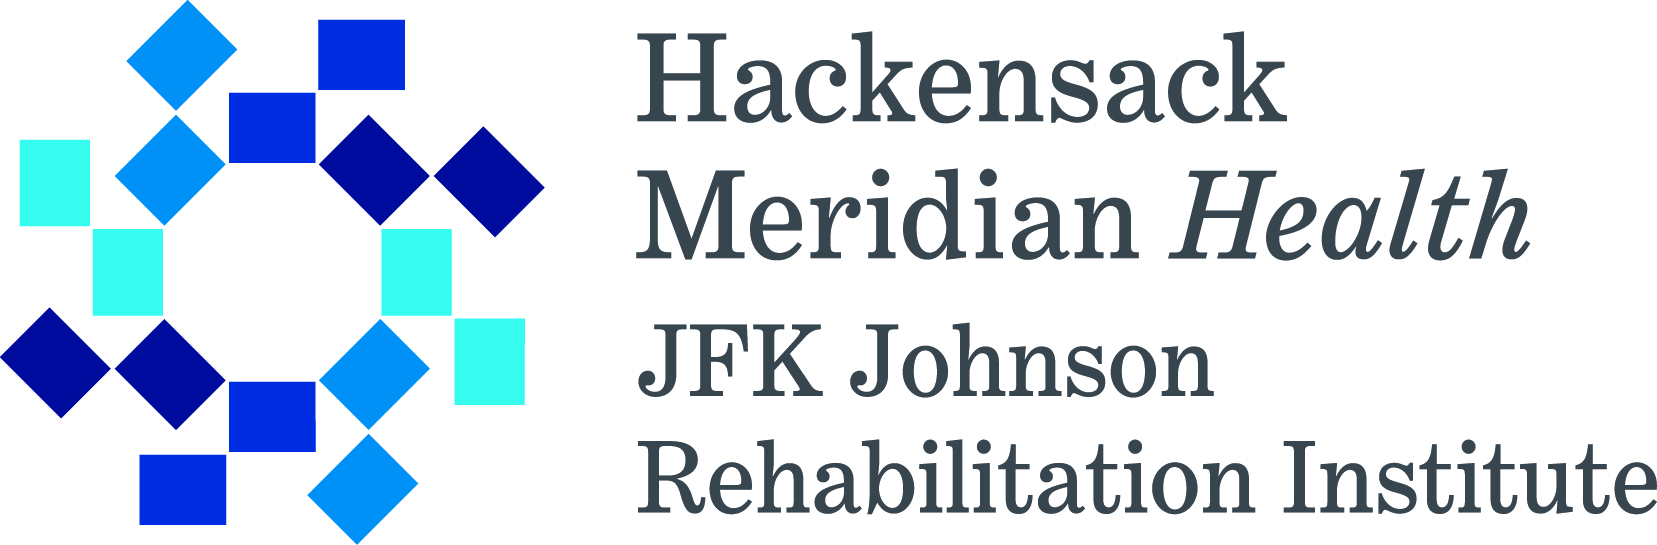 HMH-JFK-Johnson Rehab Institute